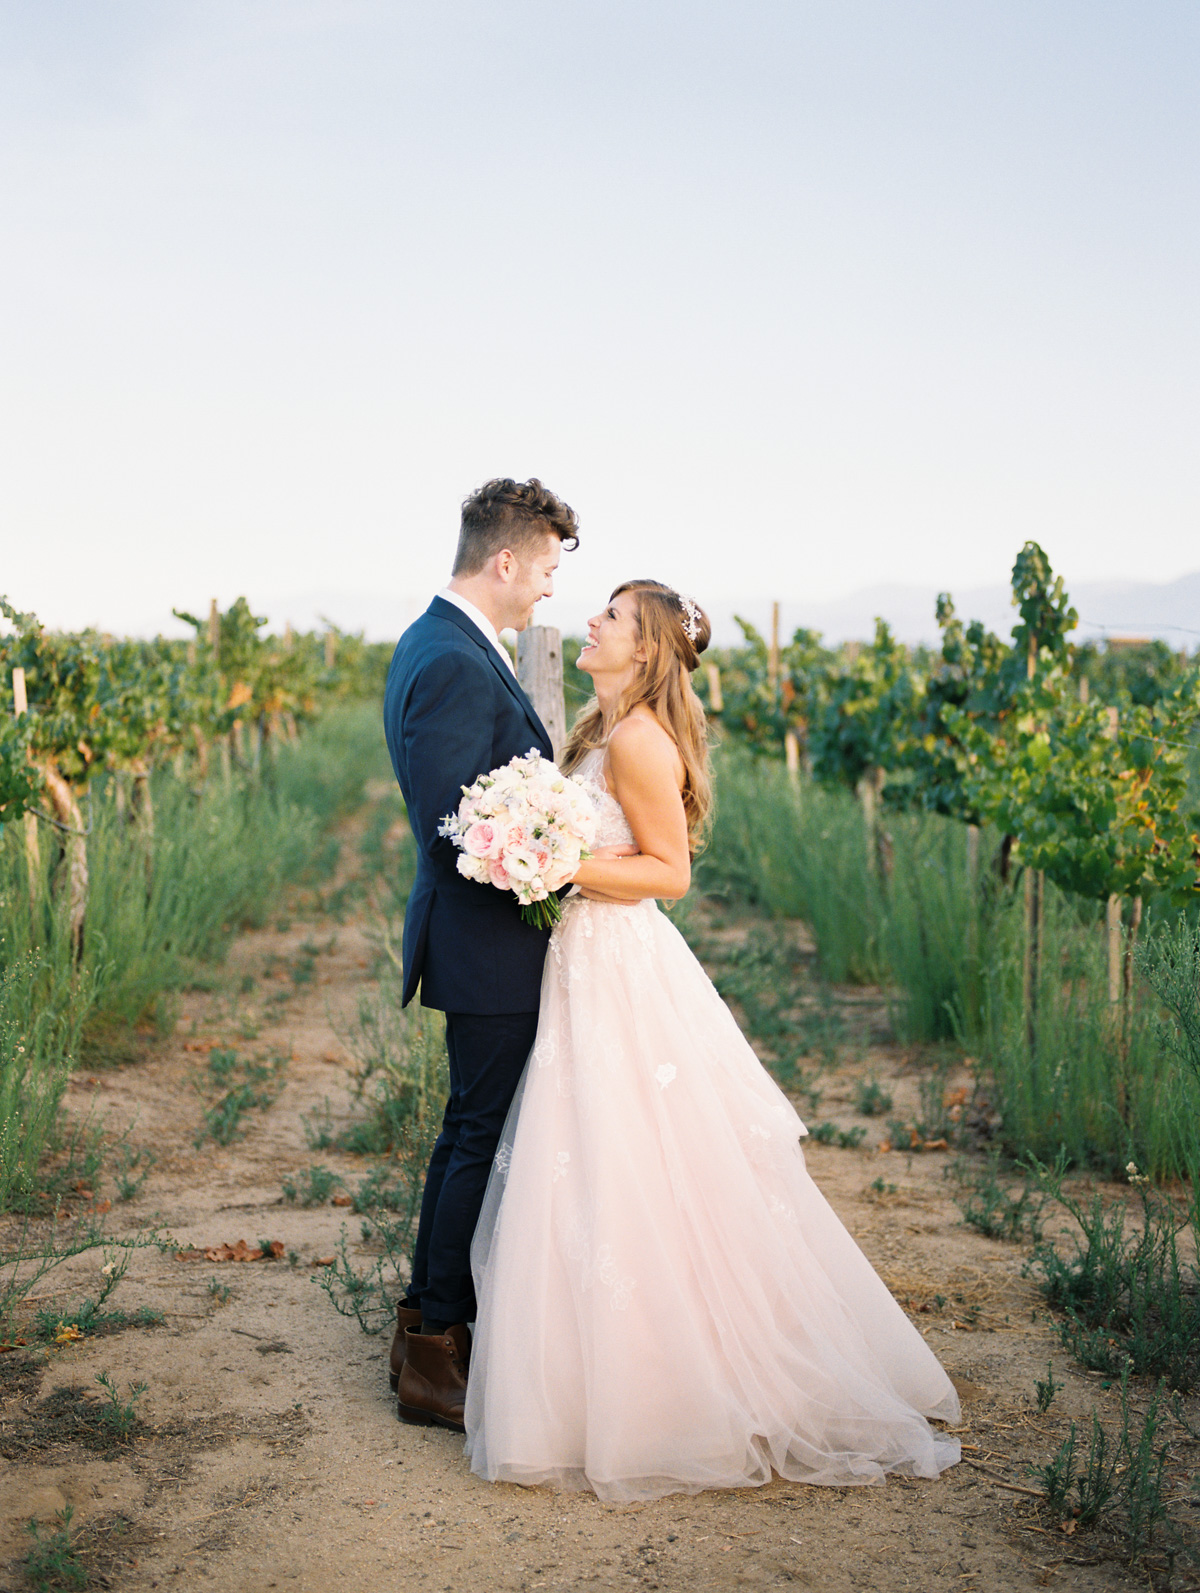 Bride & groom laughing at each other   Harrison & Jocelyne's gorgeous Temecula wedding day at Wiens Family Cellars captured by Temecula wedding photographers Betsy & John